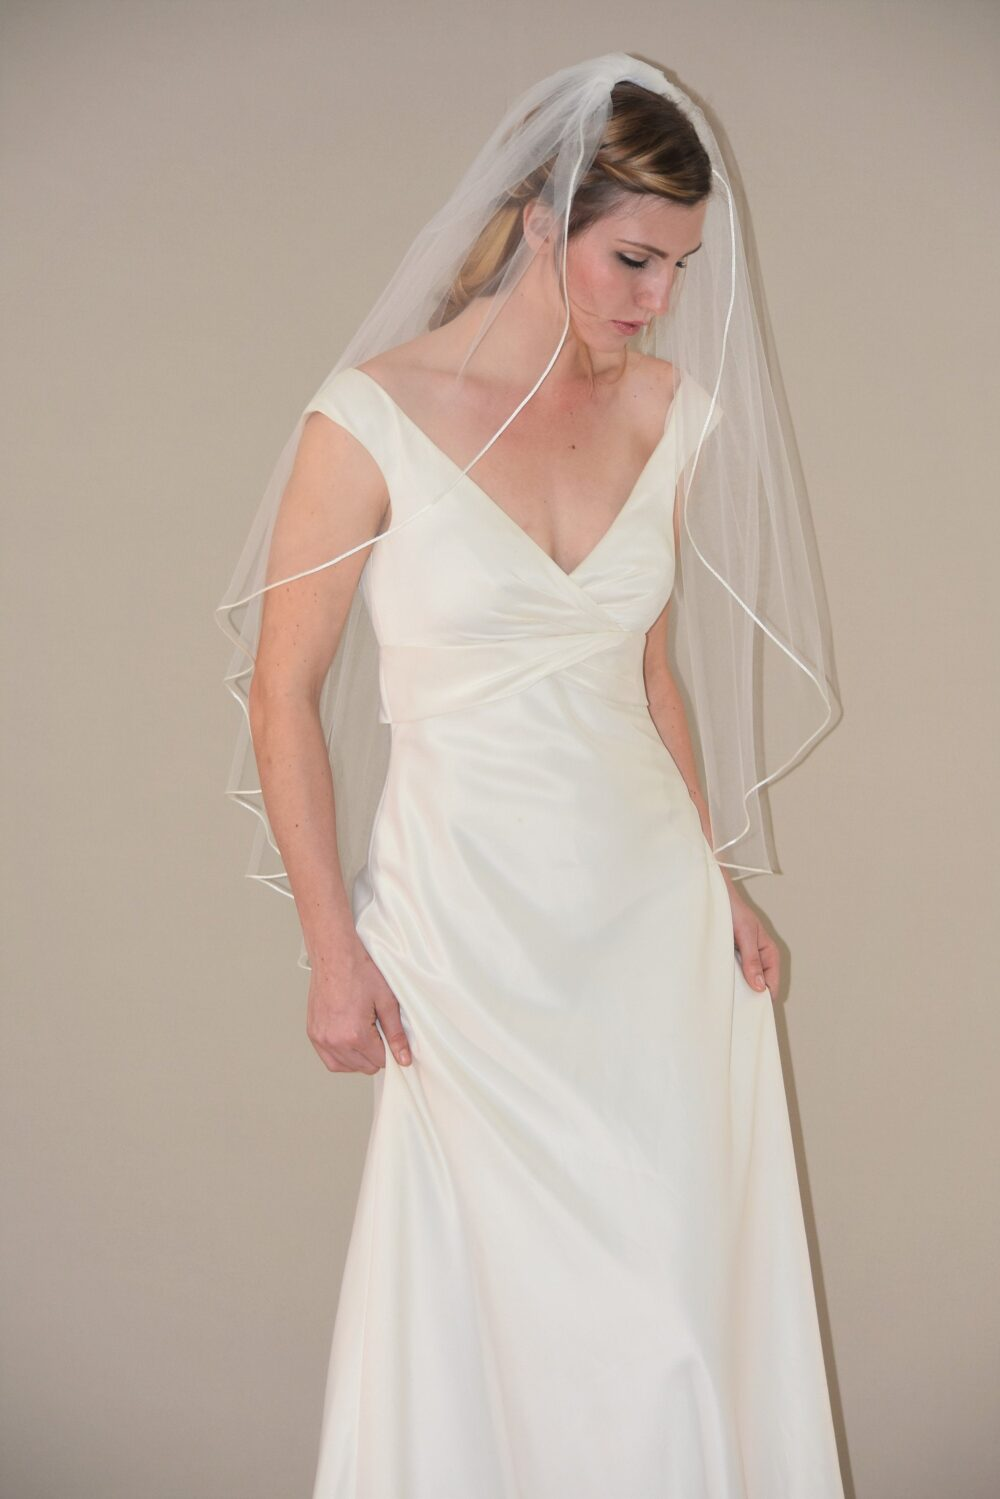 Cascading Fingertip Veil With Satin Cord Edge | Rattail Length Wedding Bridal